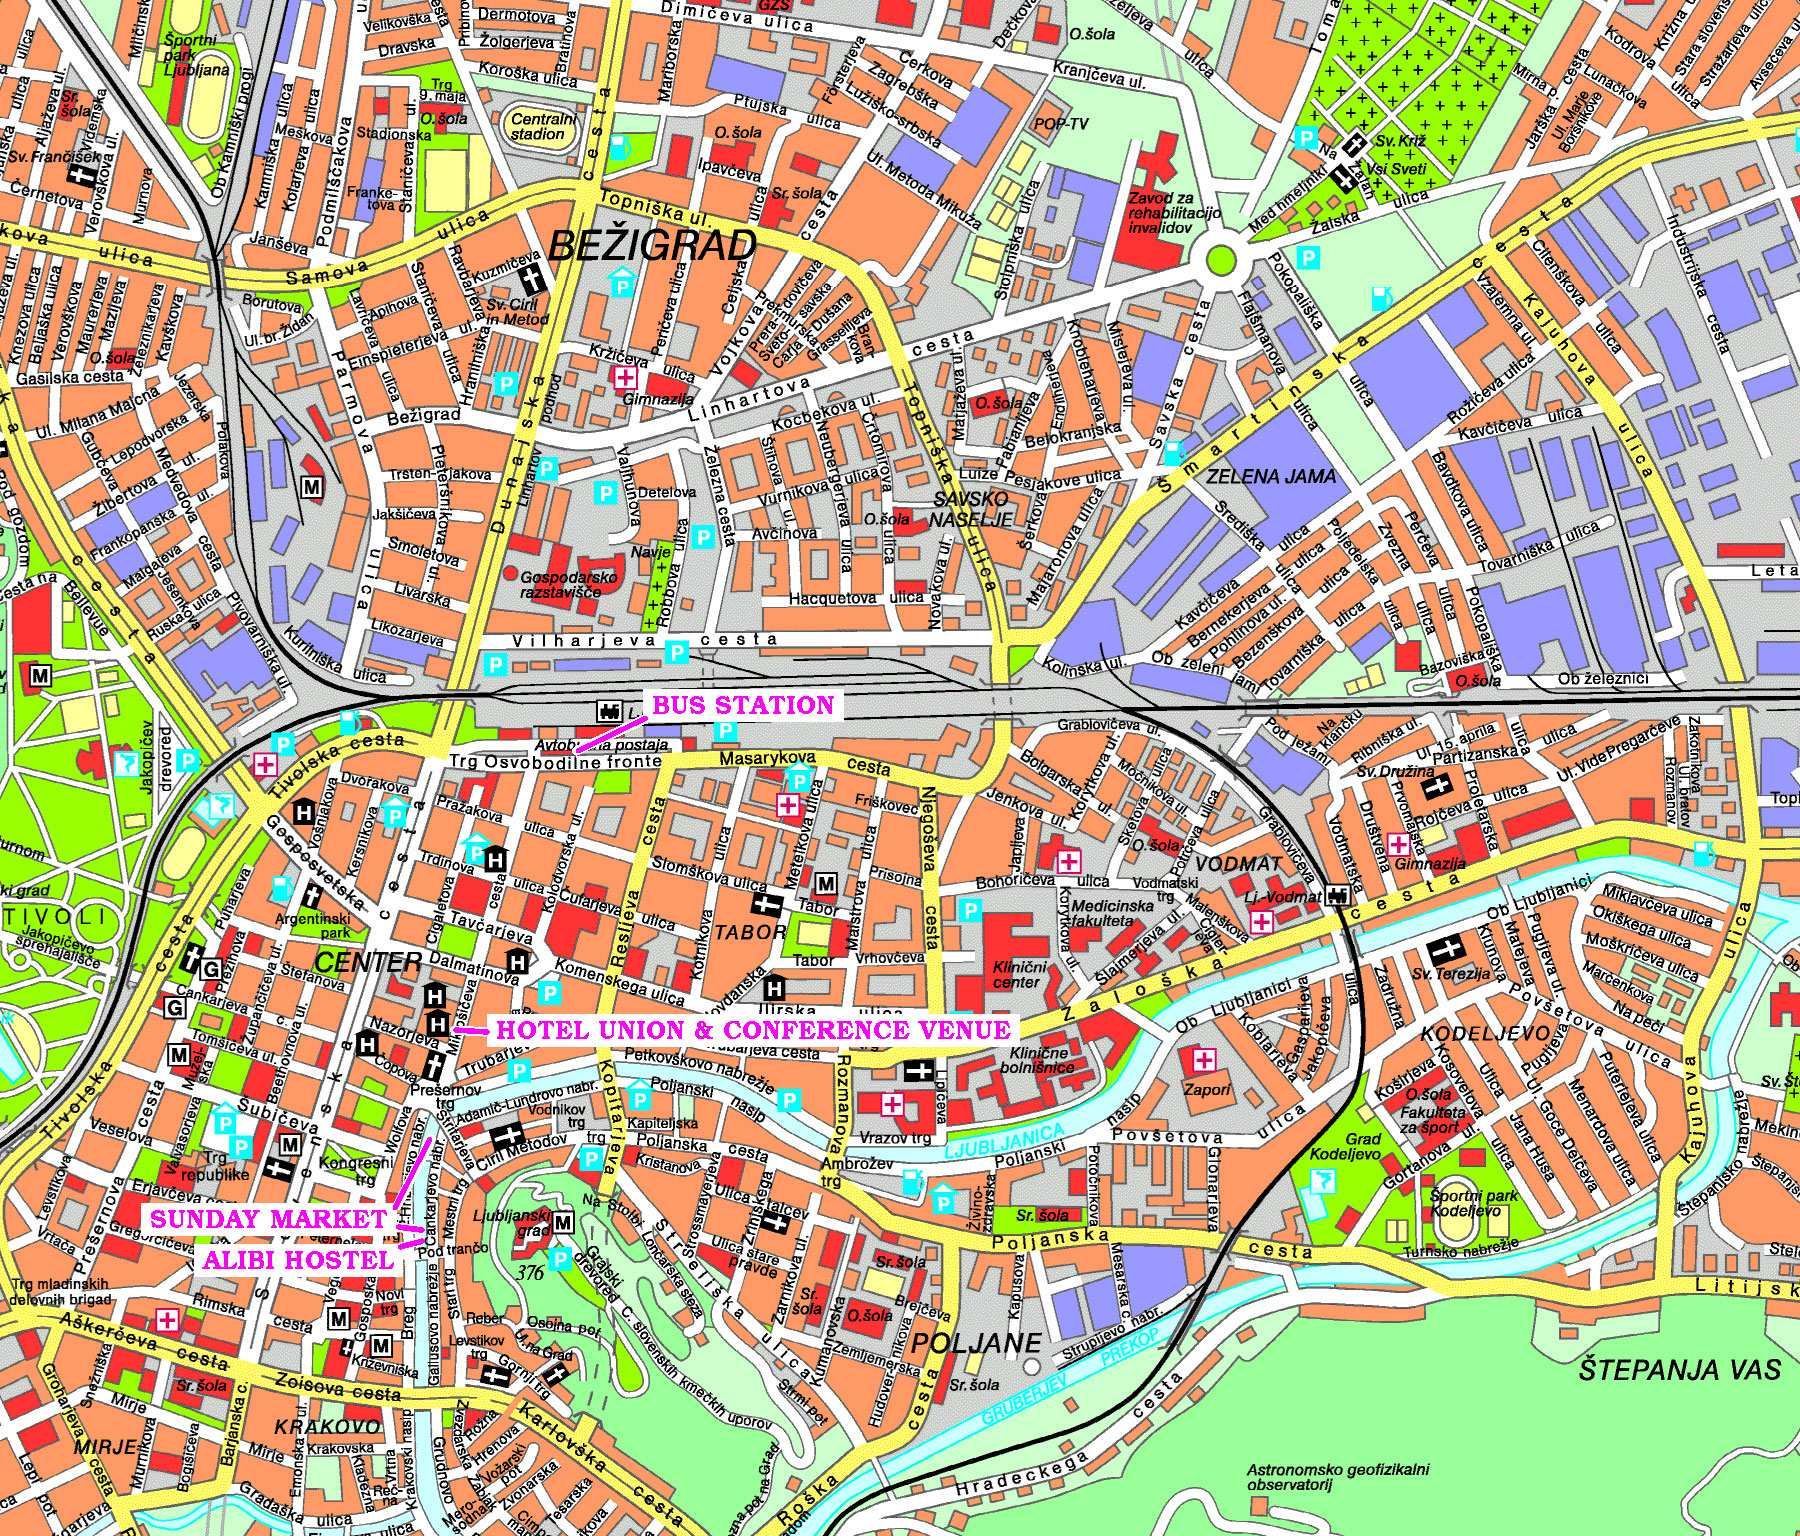 Large Ljubljana Maps for Free Download | High-Resolution and ...